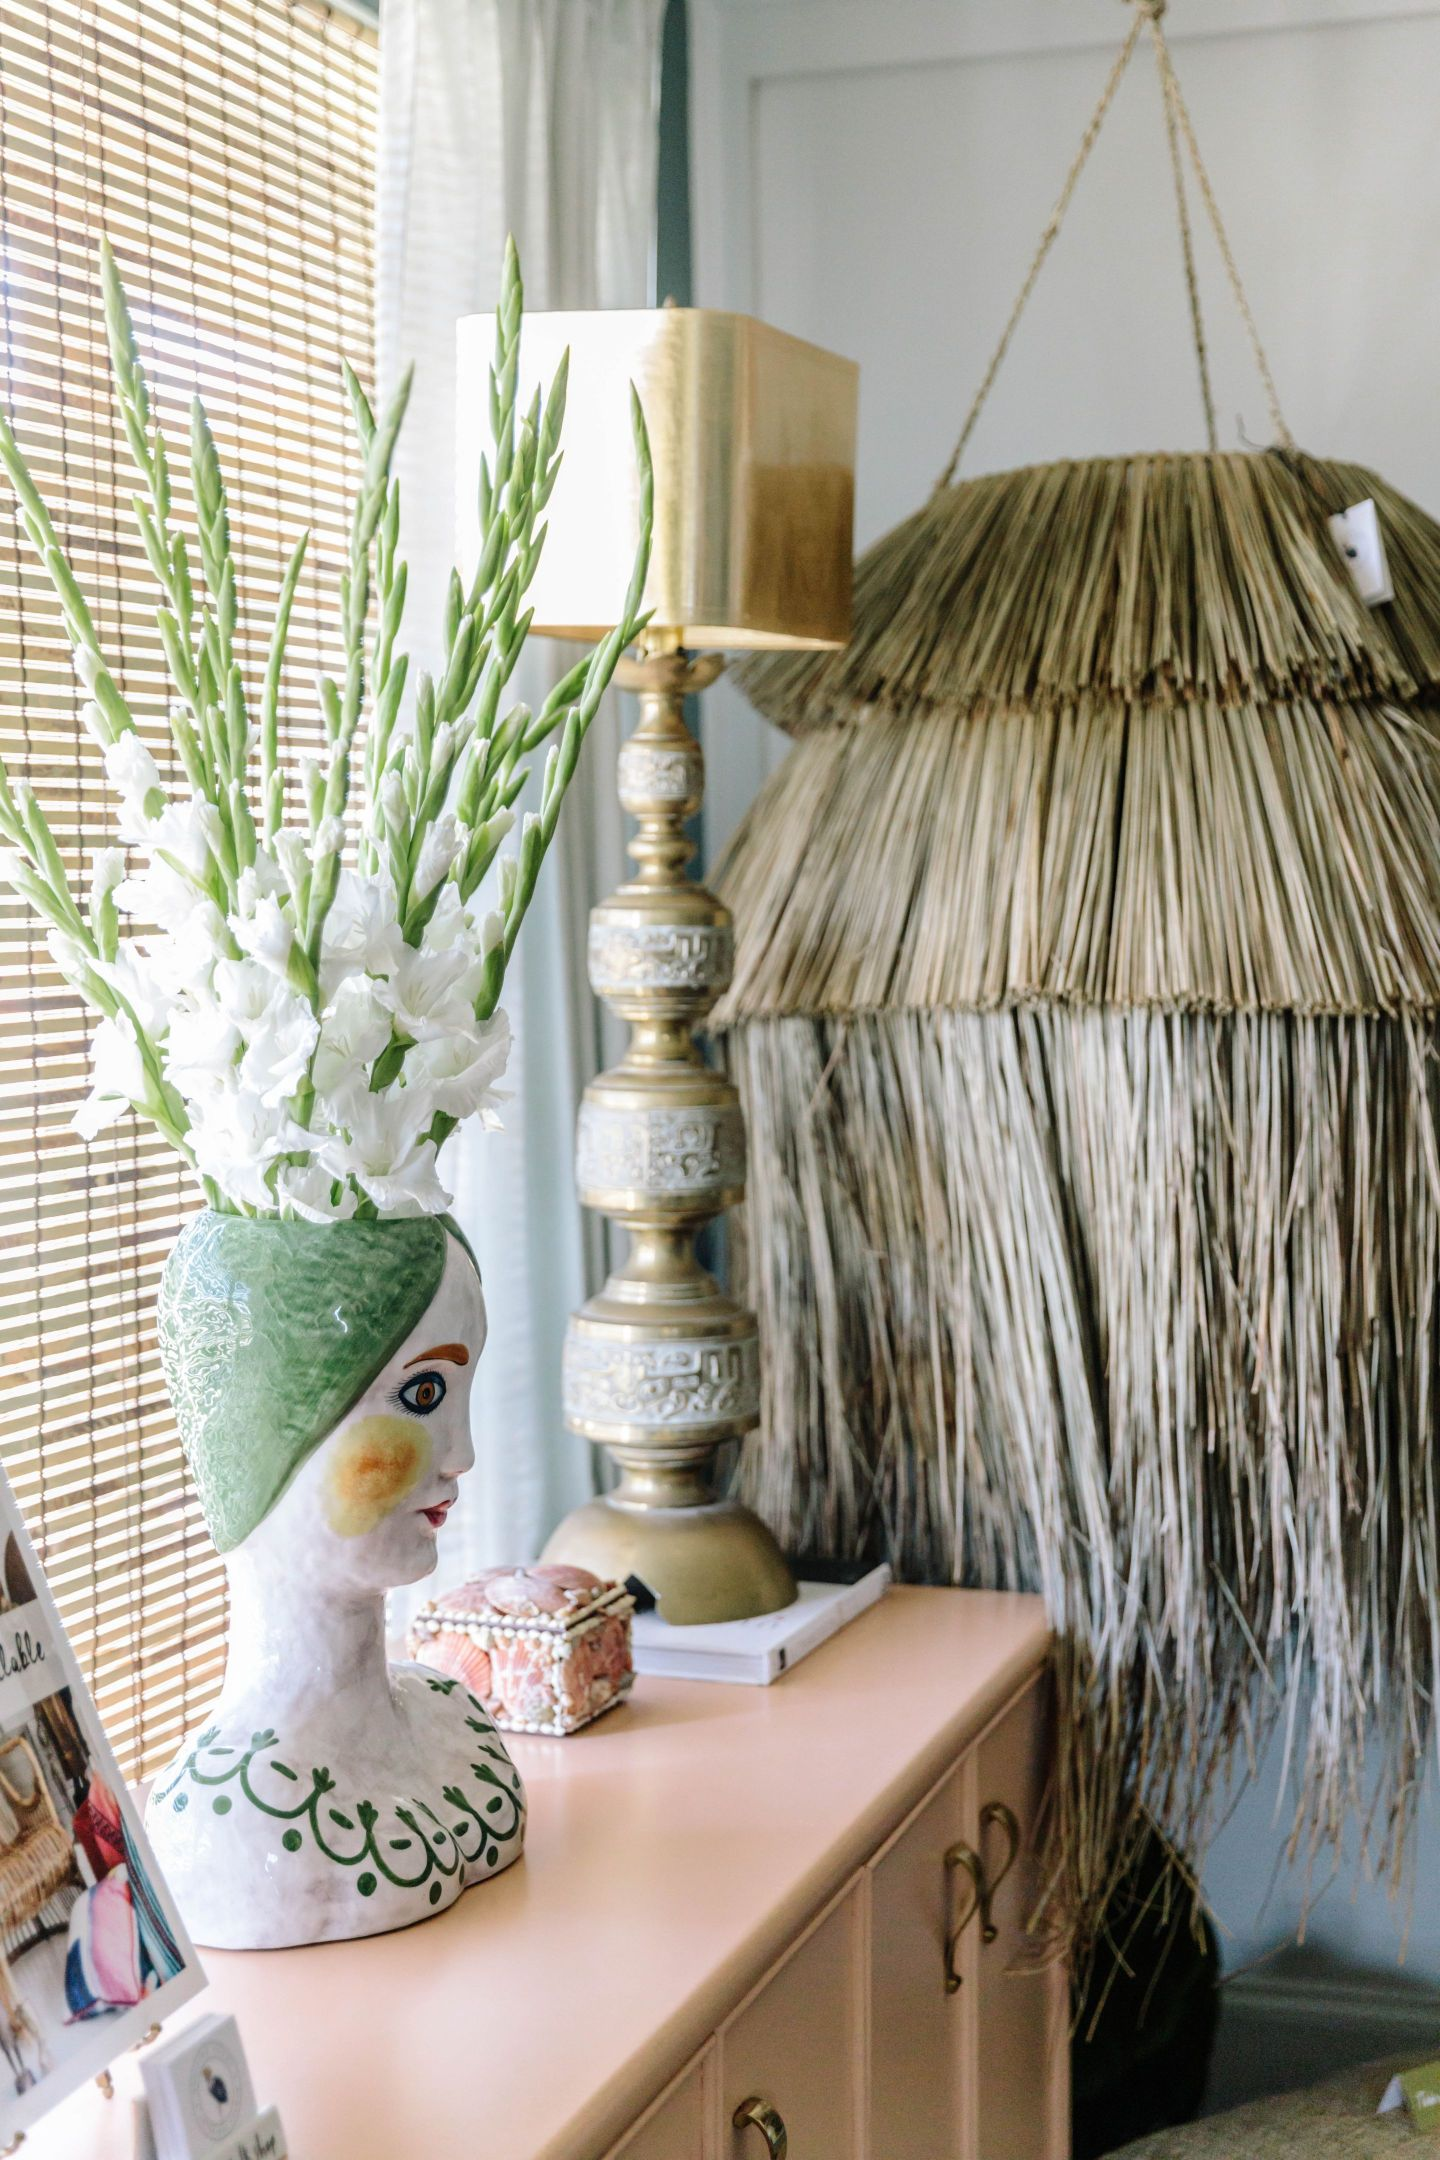 415A2049 Black- Owned Vintage Home Decor Boutique Opens in Charlotte, NC